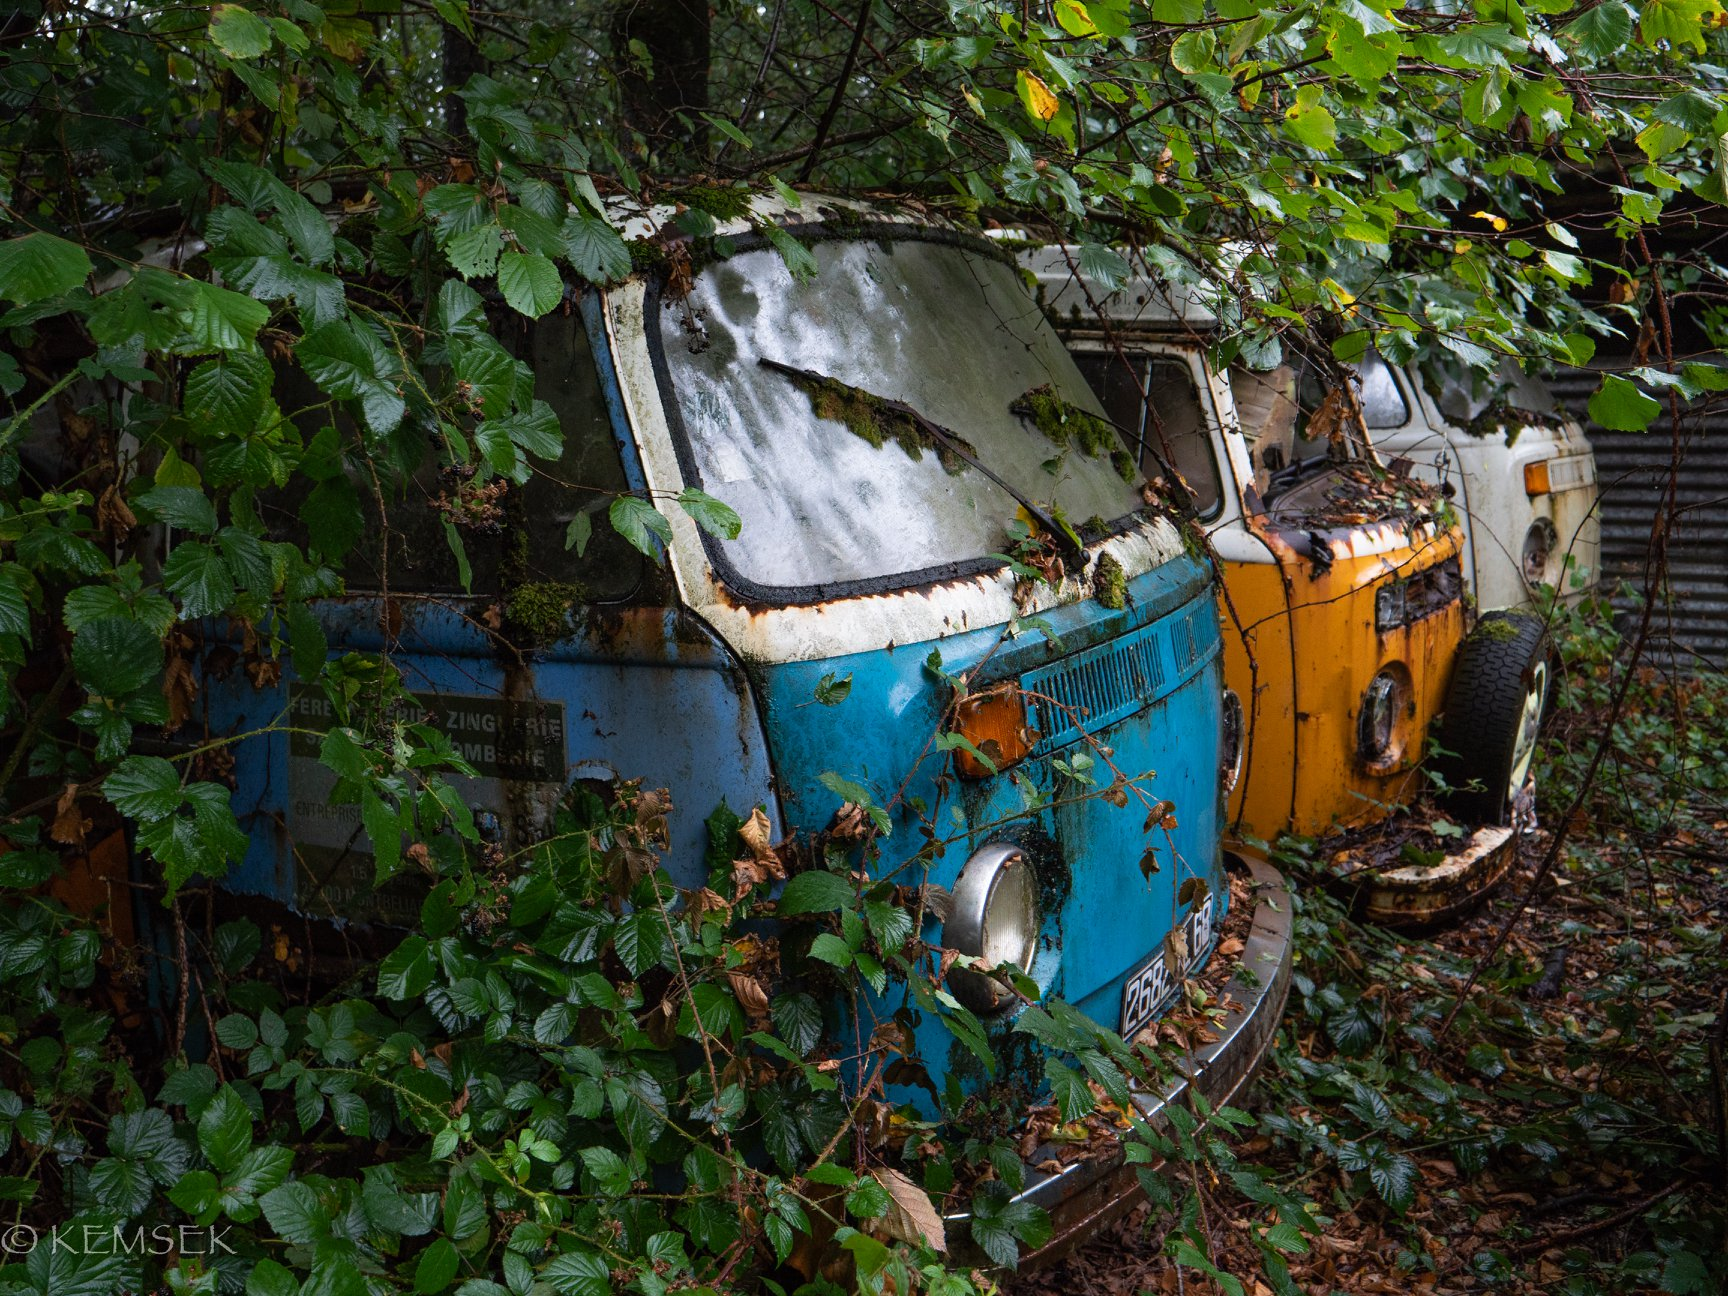 VW-in-rust-14